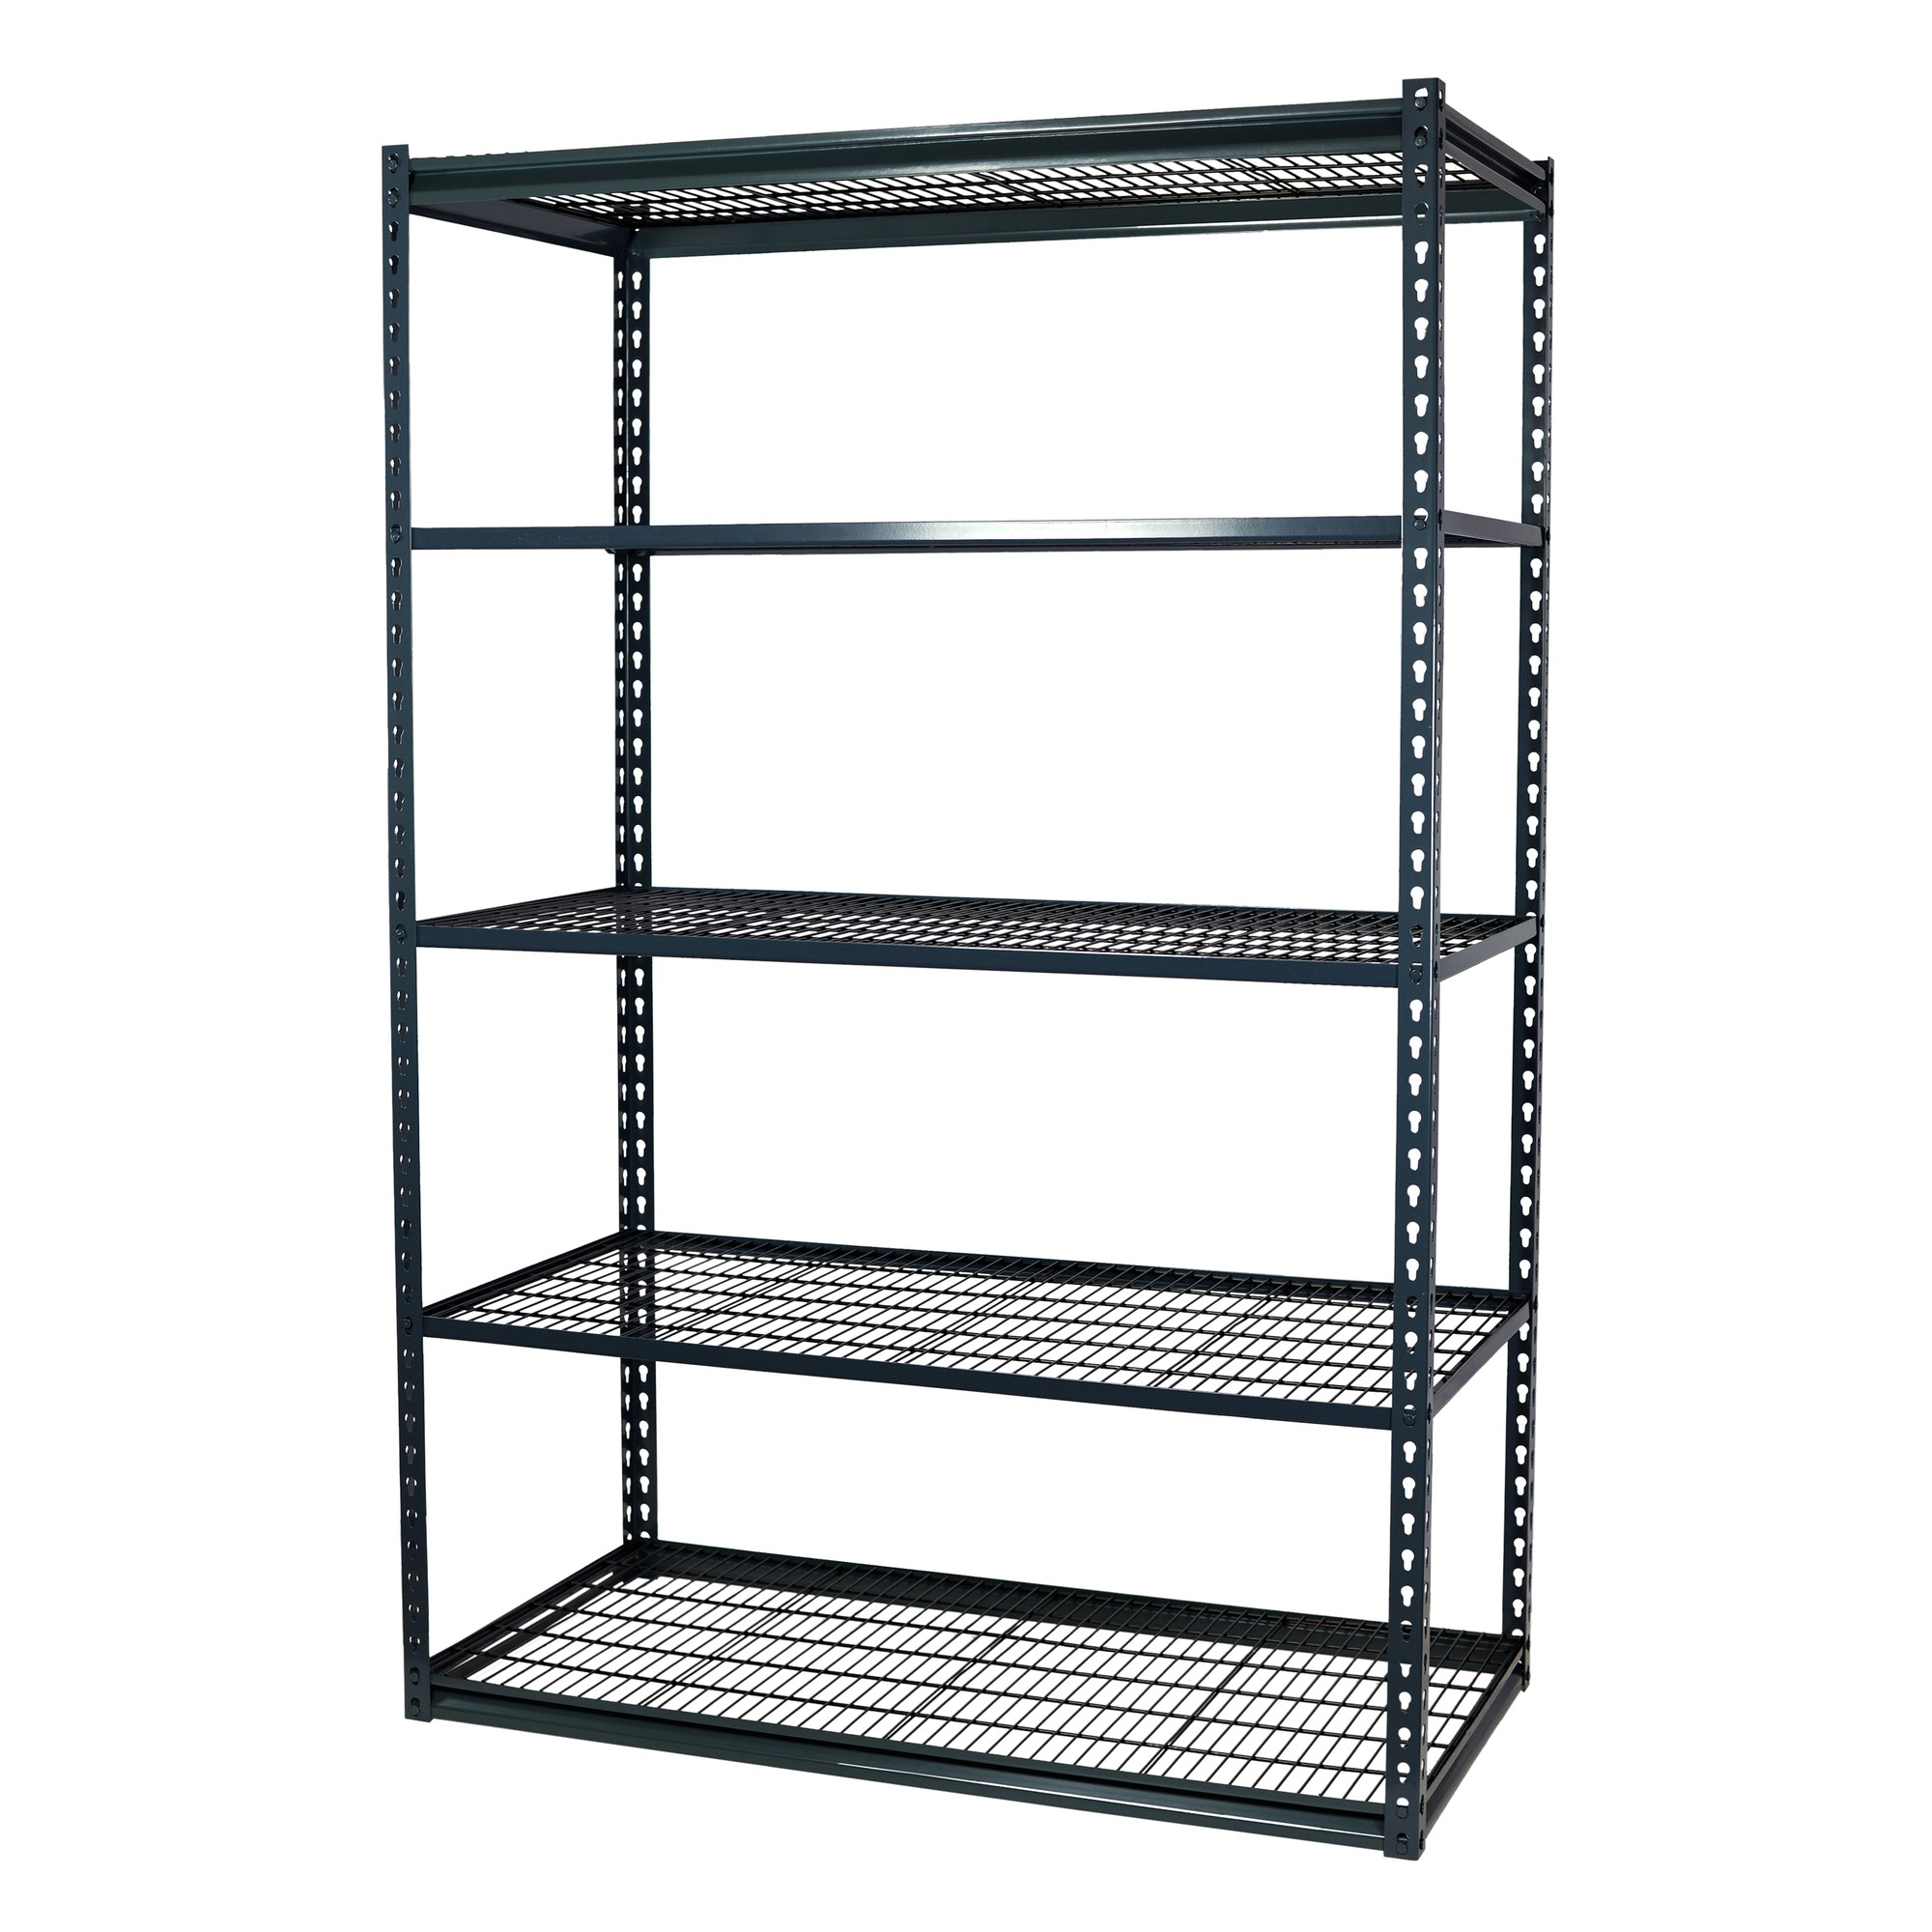 Garage Shelving Units Storage Max Garage Shelving Boltless 36 X 24 X 72 Heavy Duty 5 Shelves